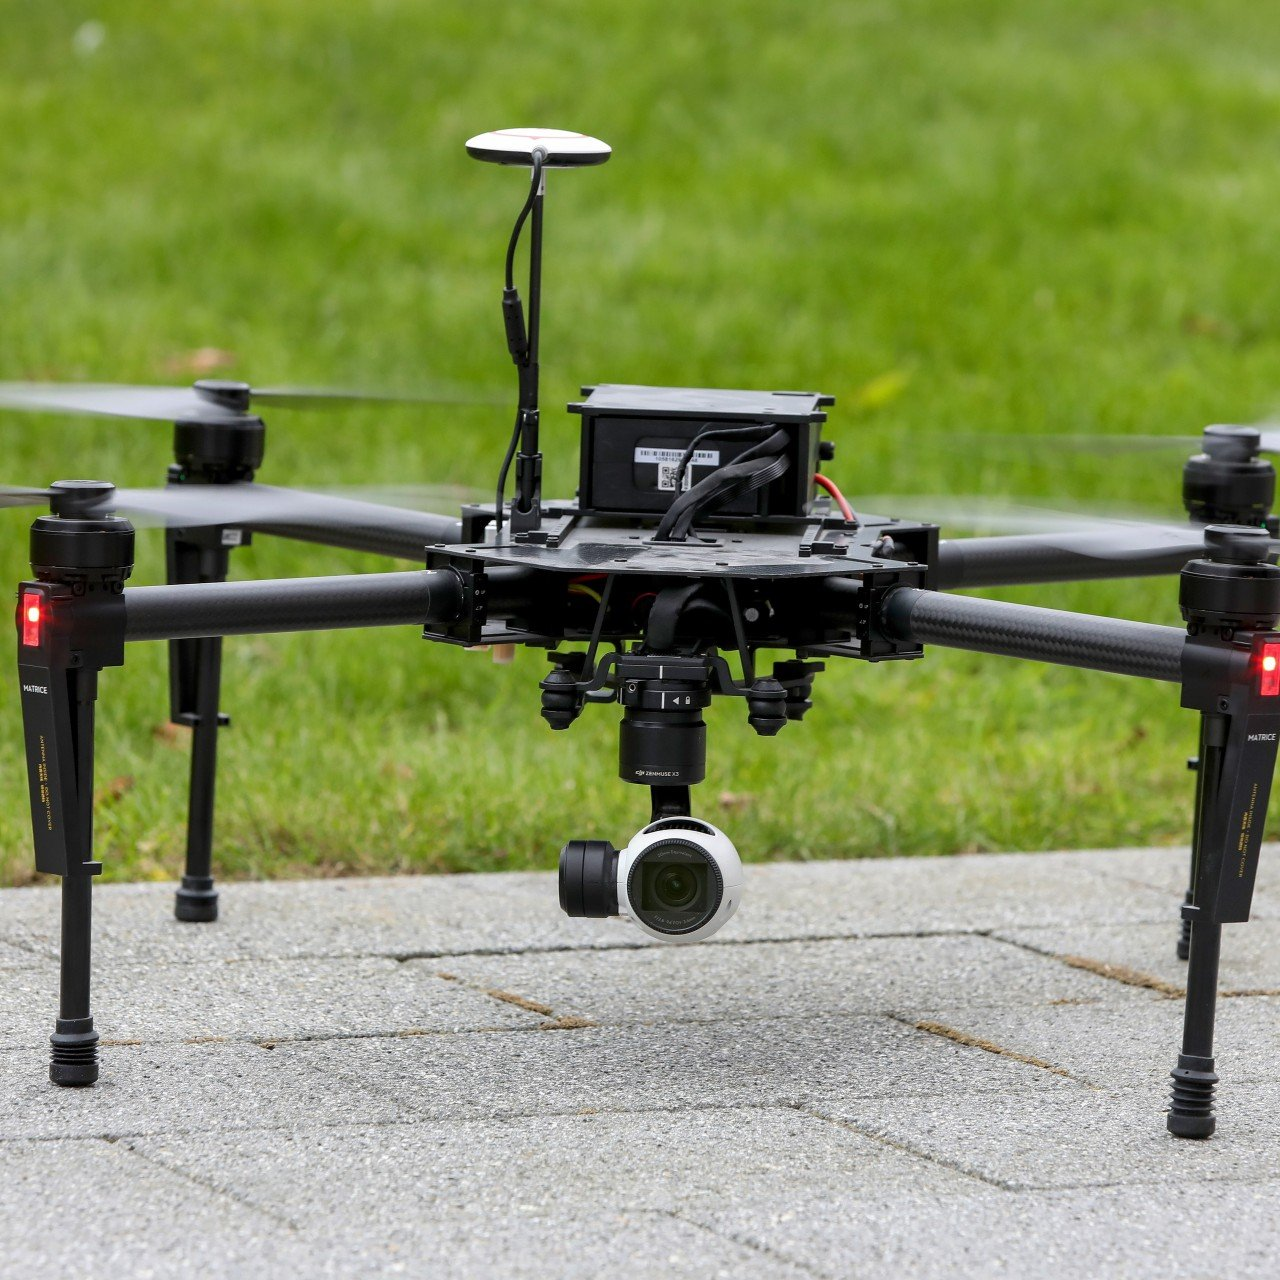 European Union establishes new rules for drone operation | South